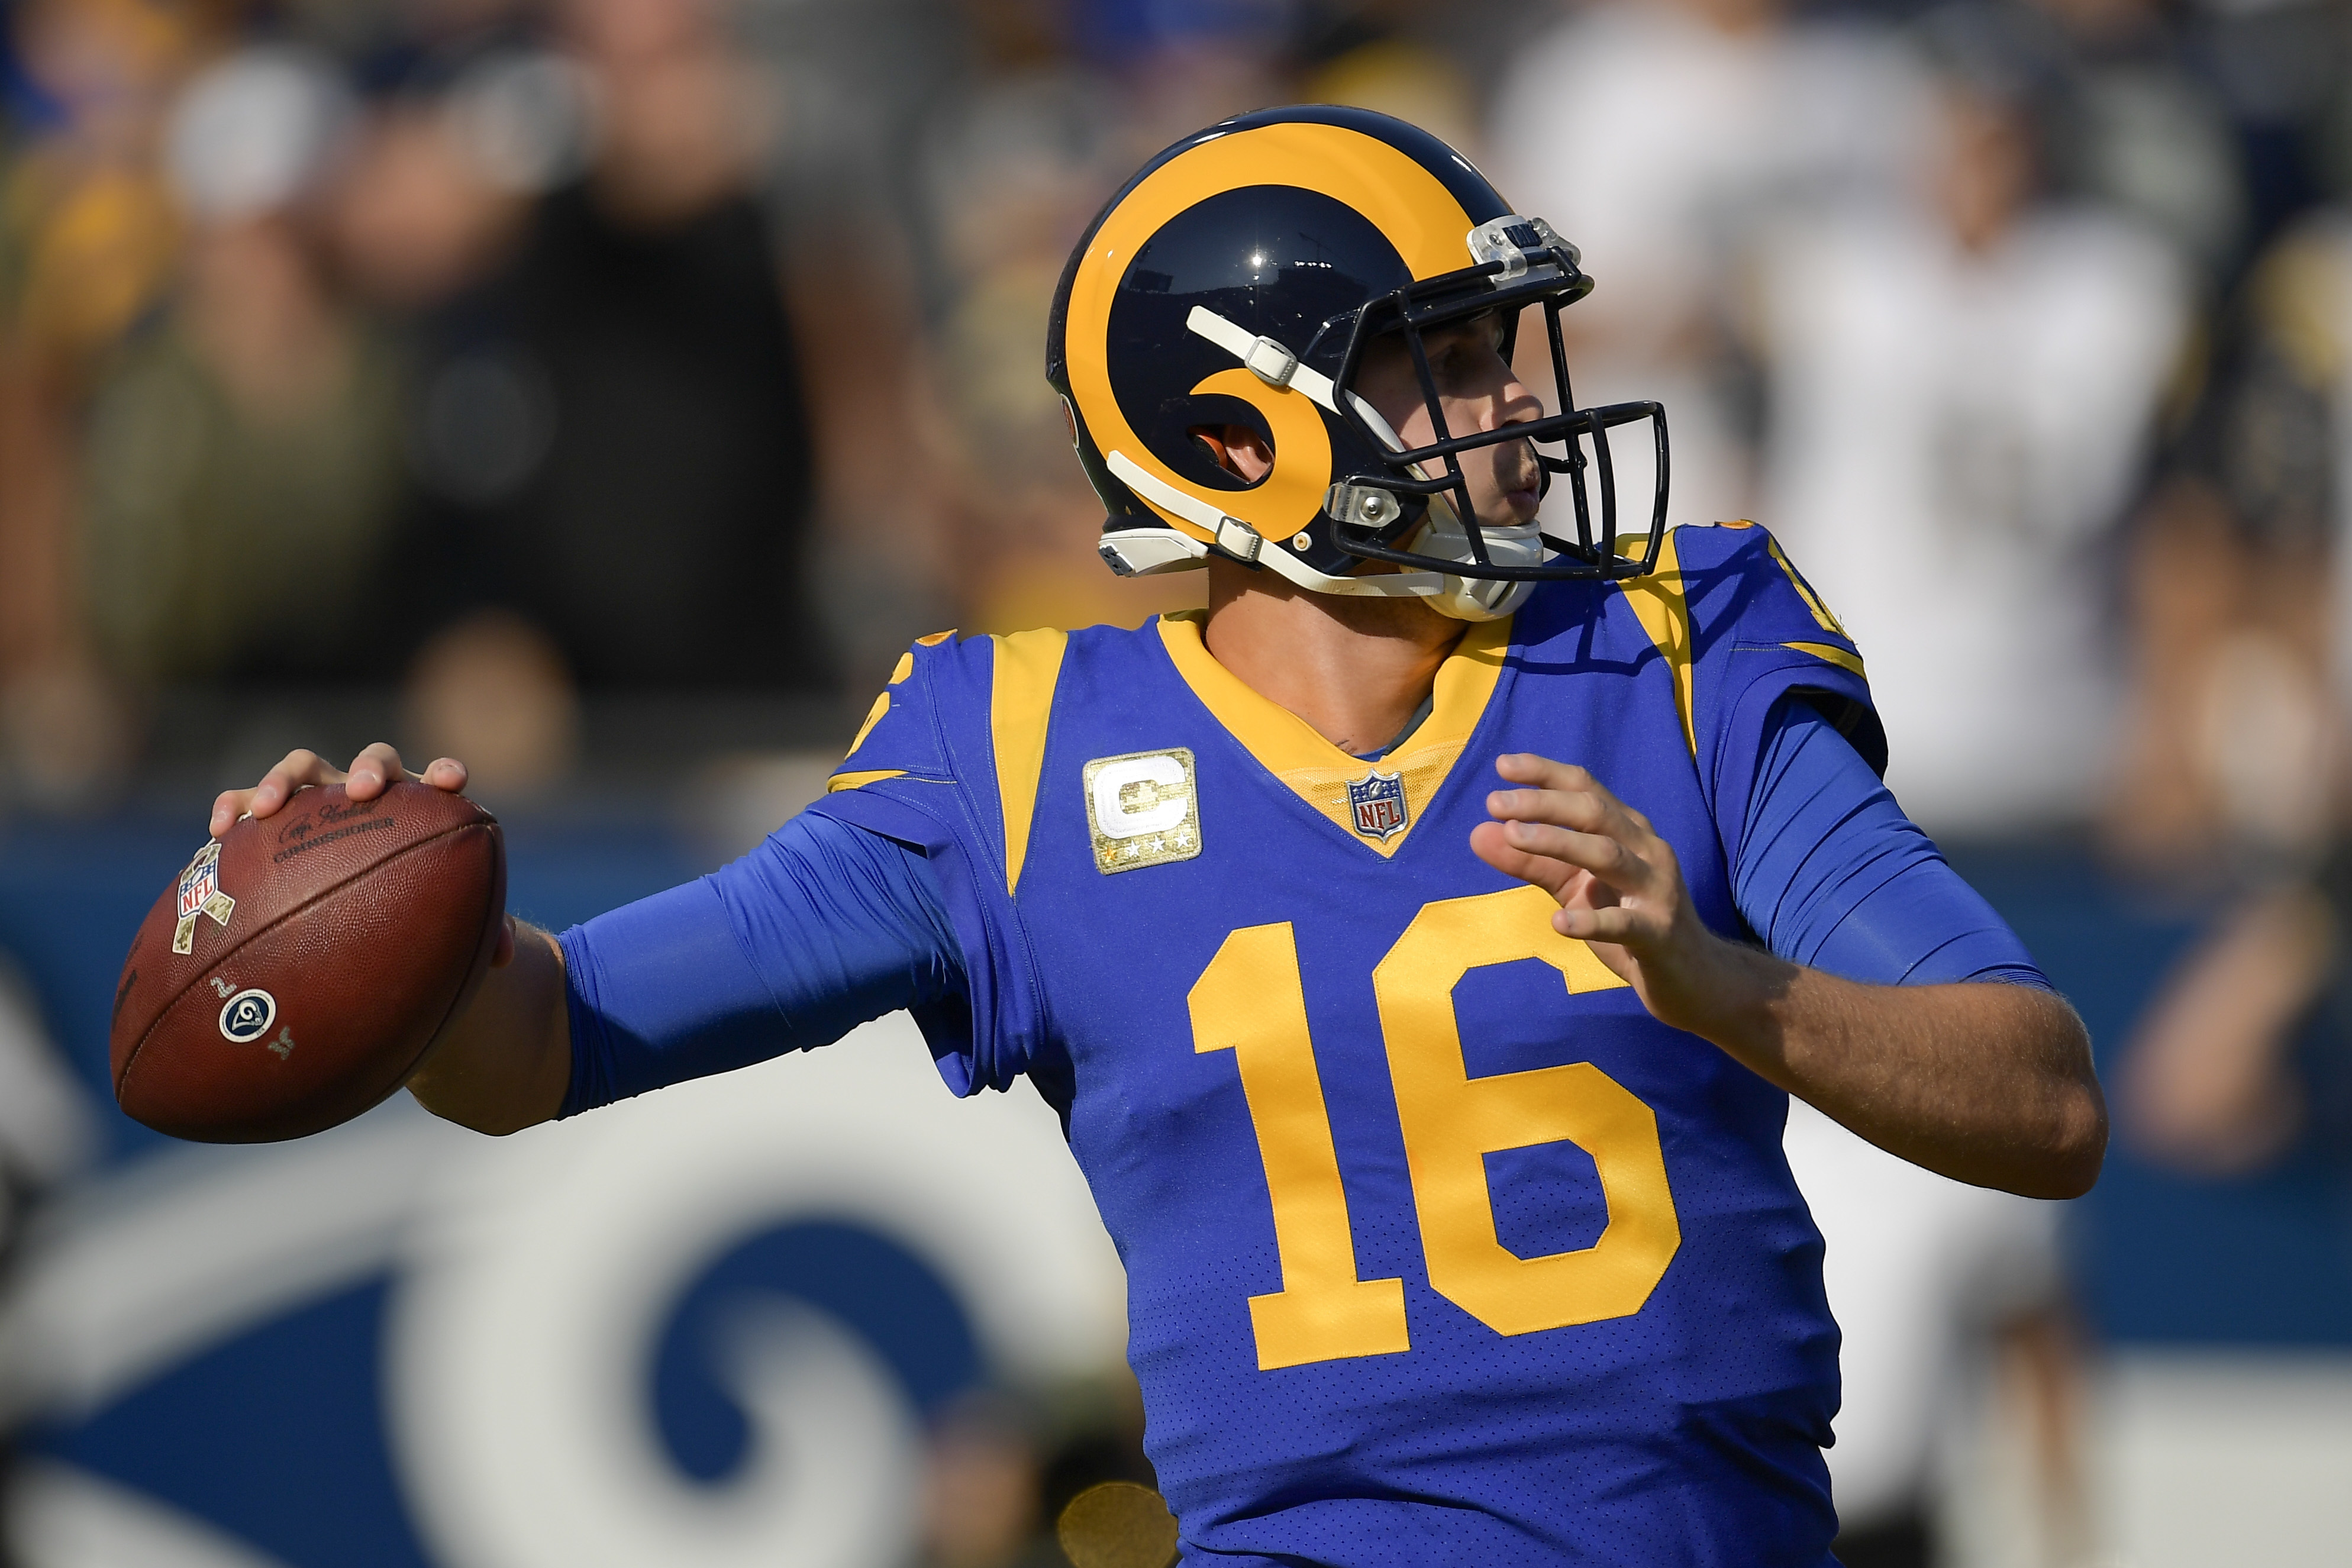 Jared Goff and the Rams wore their throwbacks this past weekend.